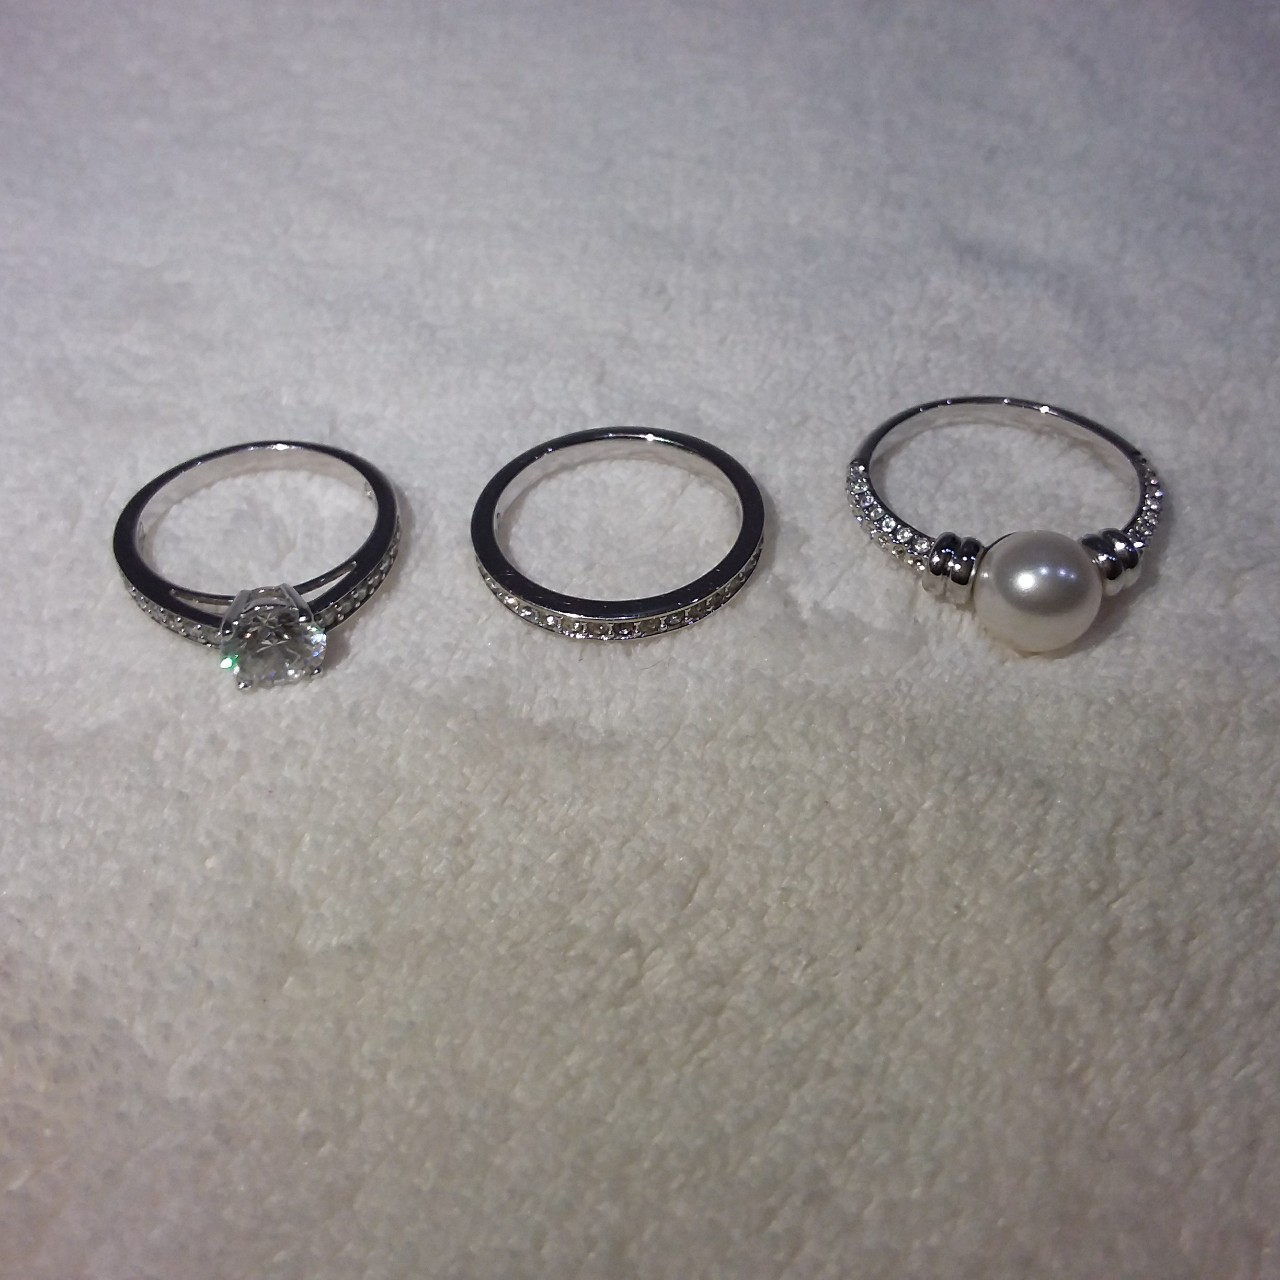 - Silver swarovski rings purchased directly from    - Depop